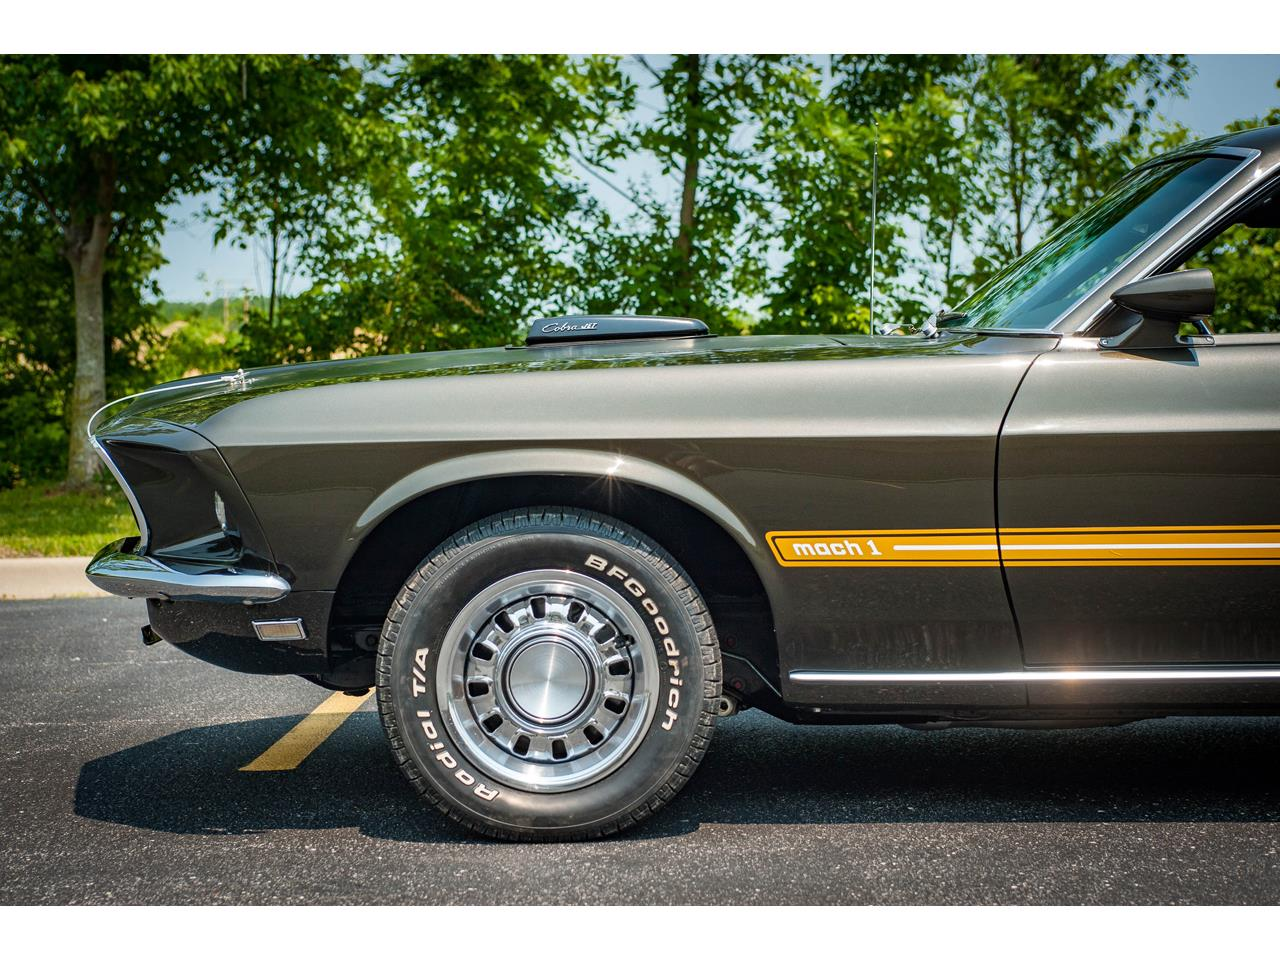 Large Picture of Classic 1969 Ford Mustang located in O'Fallon Illinois Offered by Gateway Classic Cars - St. Louis - QBA2